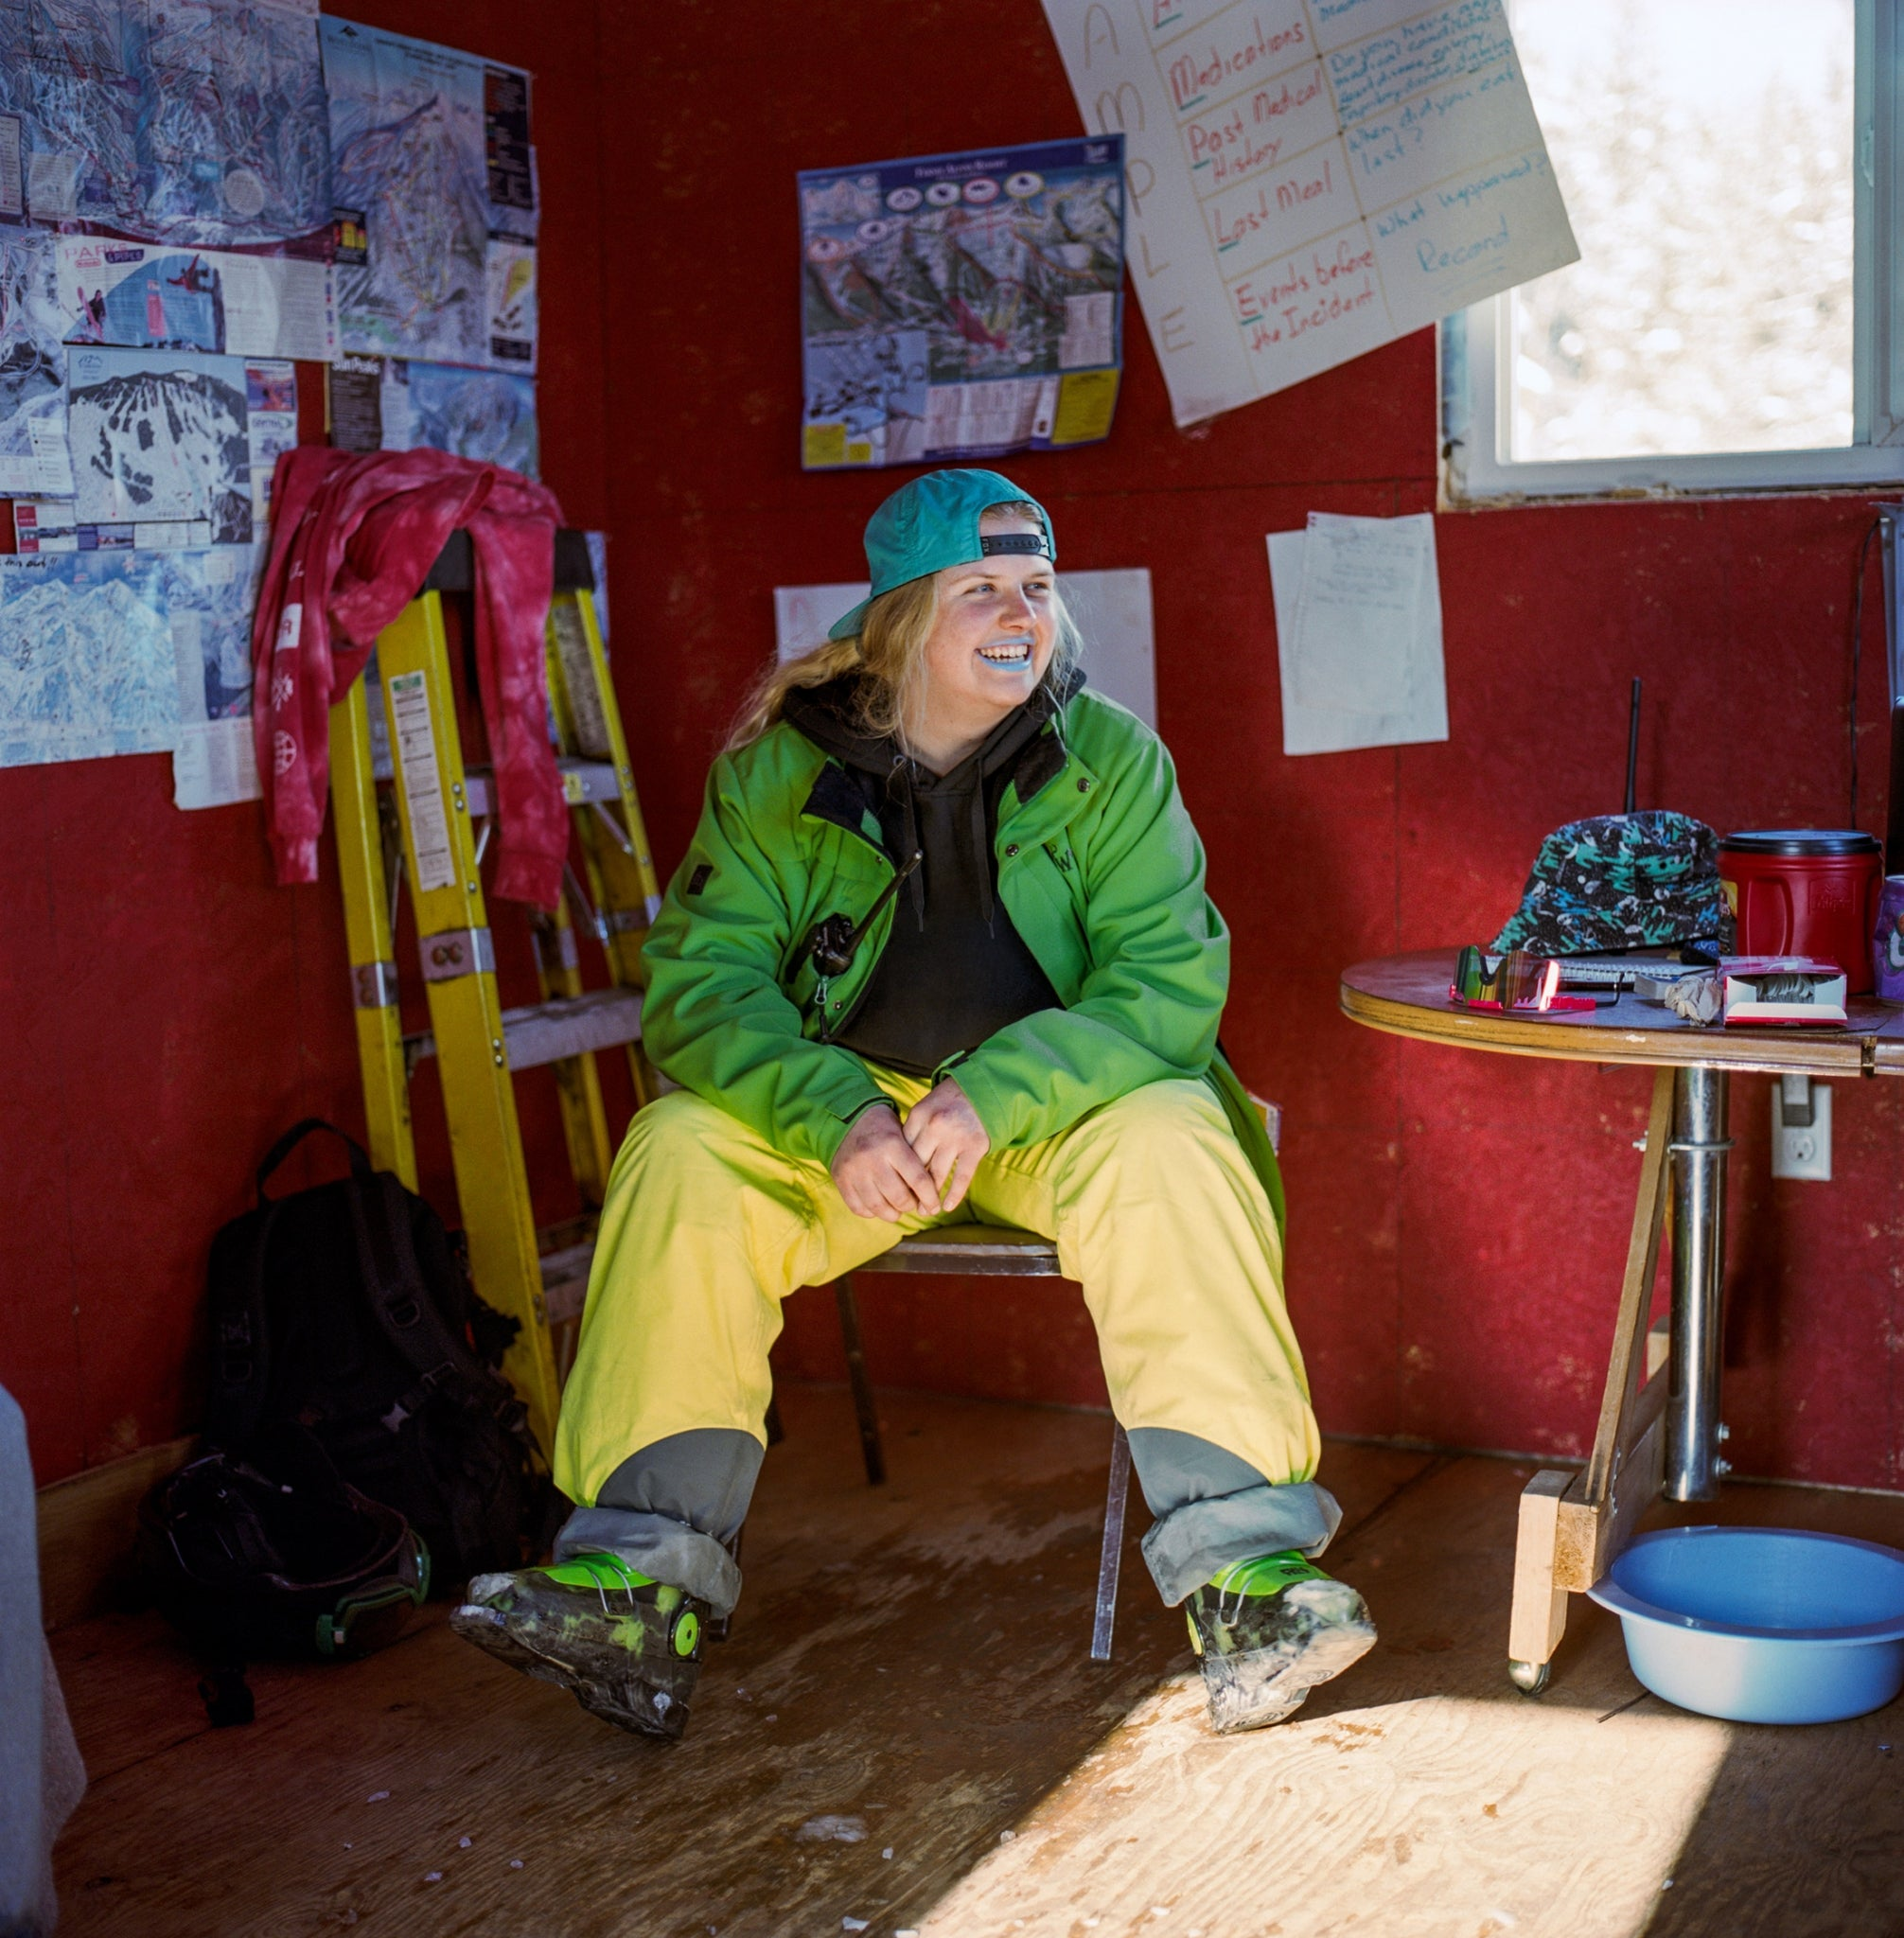 Elkford resident, head of ski patrol and ski school director at Wapiti, Abbey Peterson. Photo: Kari Medig.